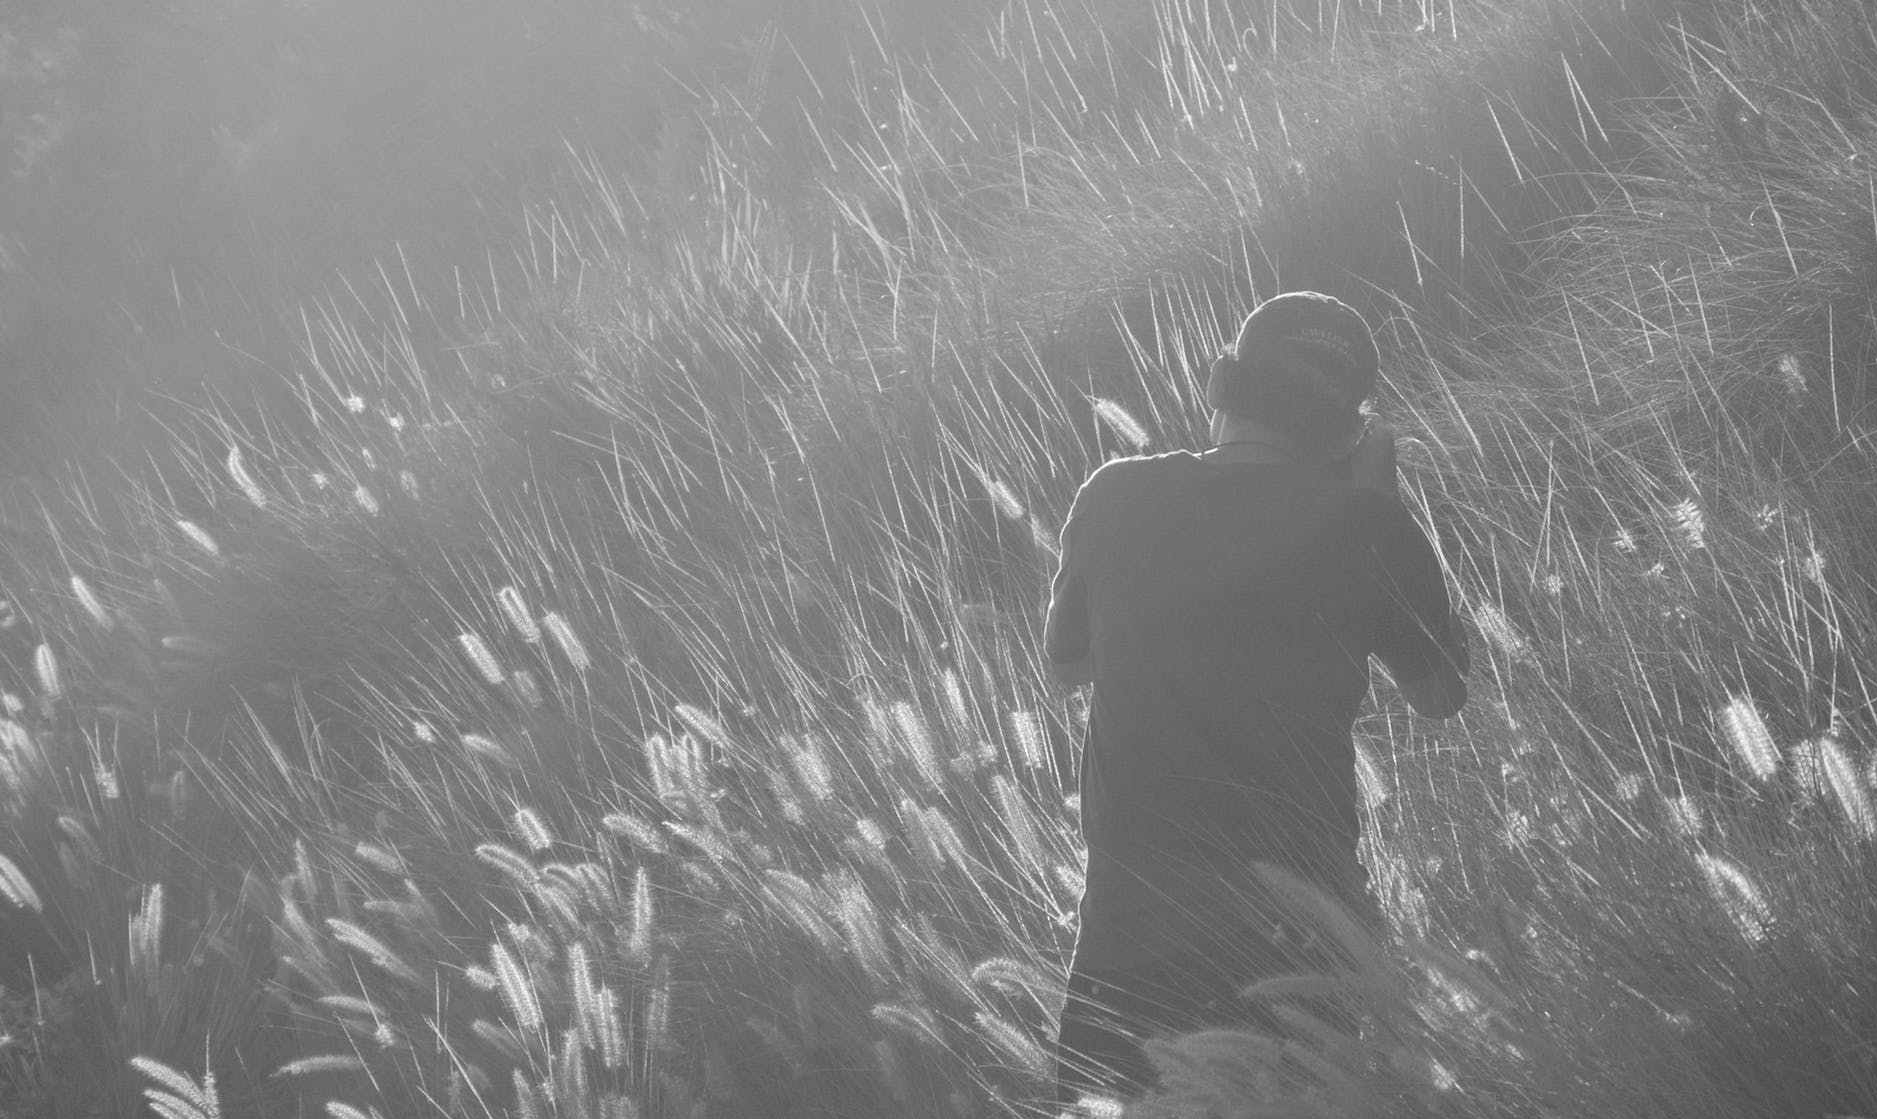 man taking photo on grass field in greyscale photography